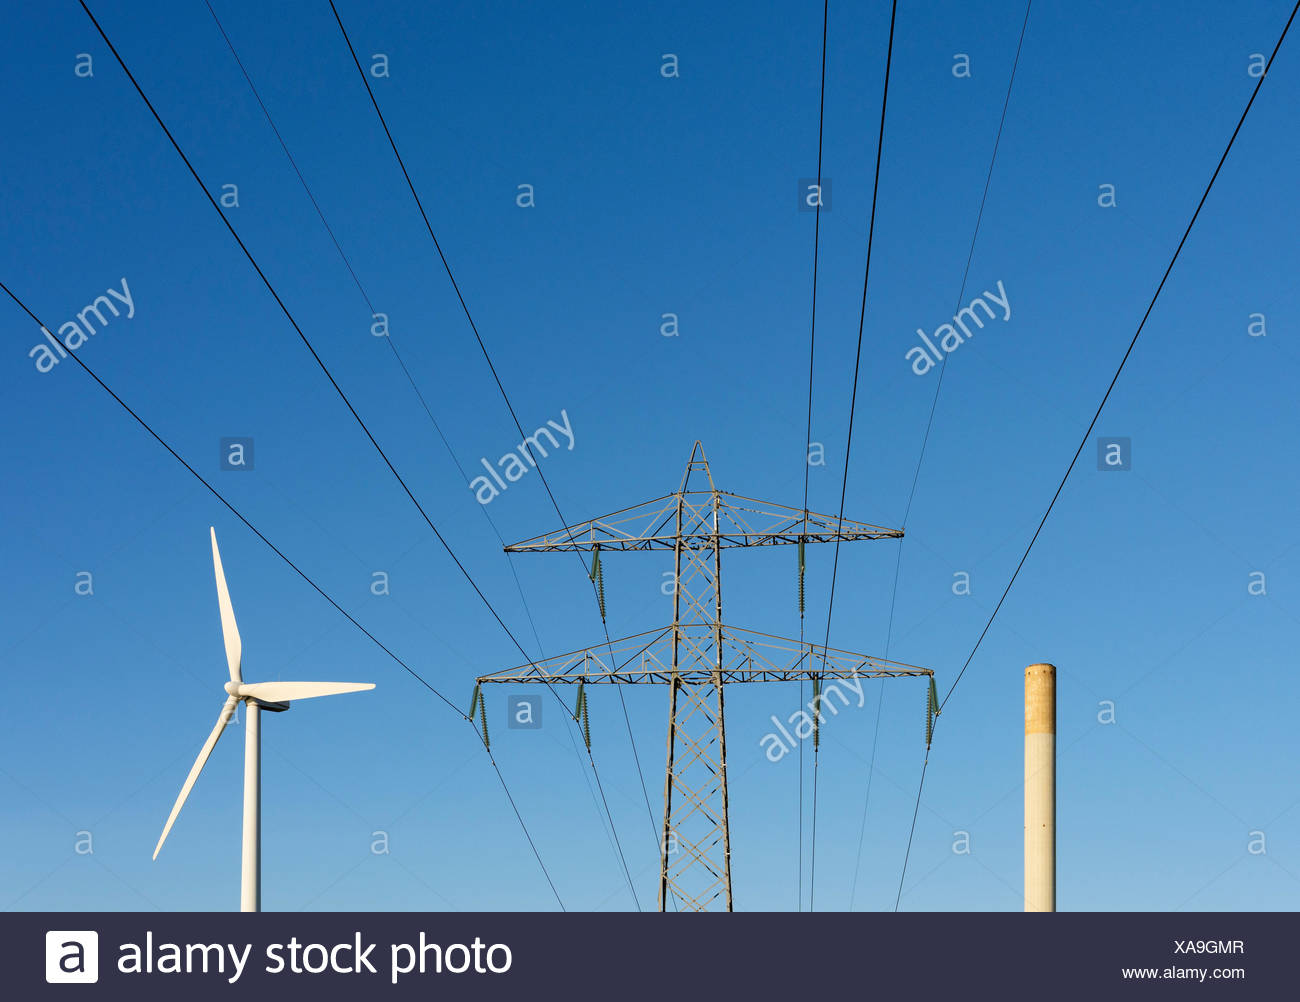 Chimney belonging to a coal-fired power station, and a modern wind turbine - Stock Photo